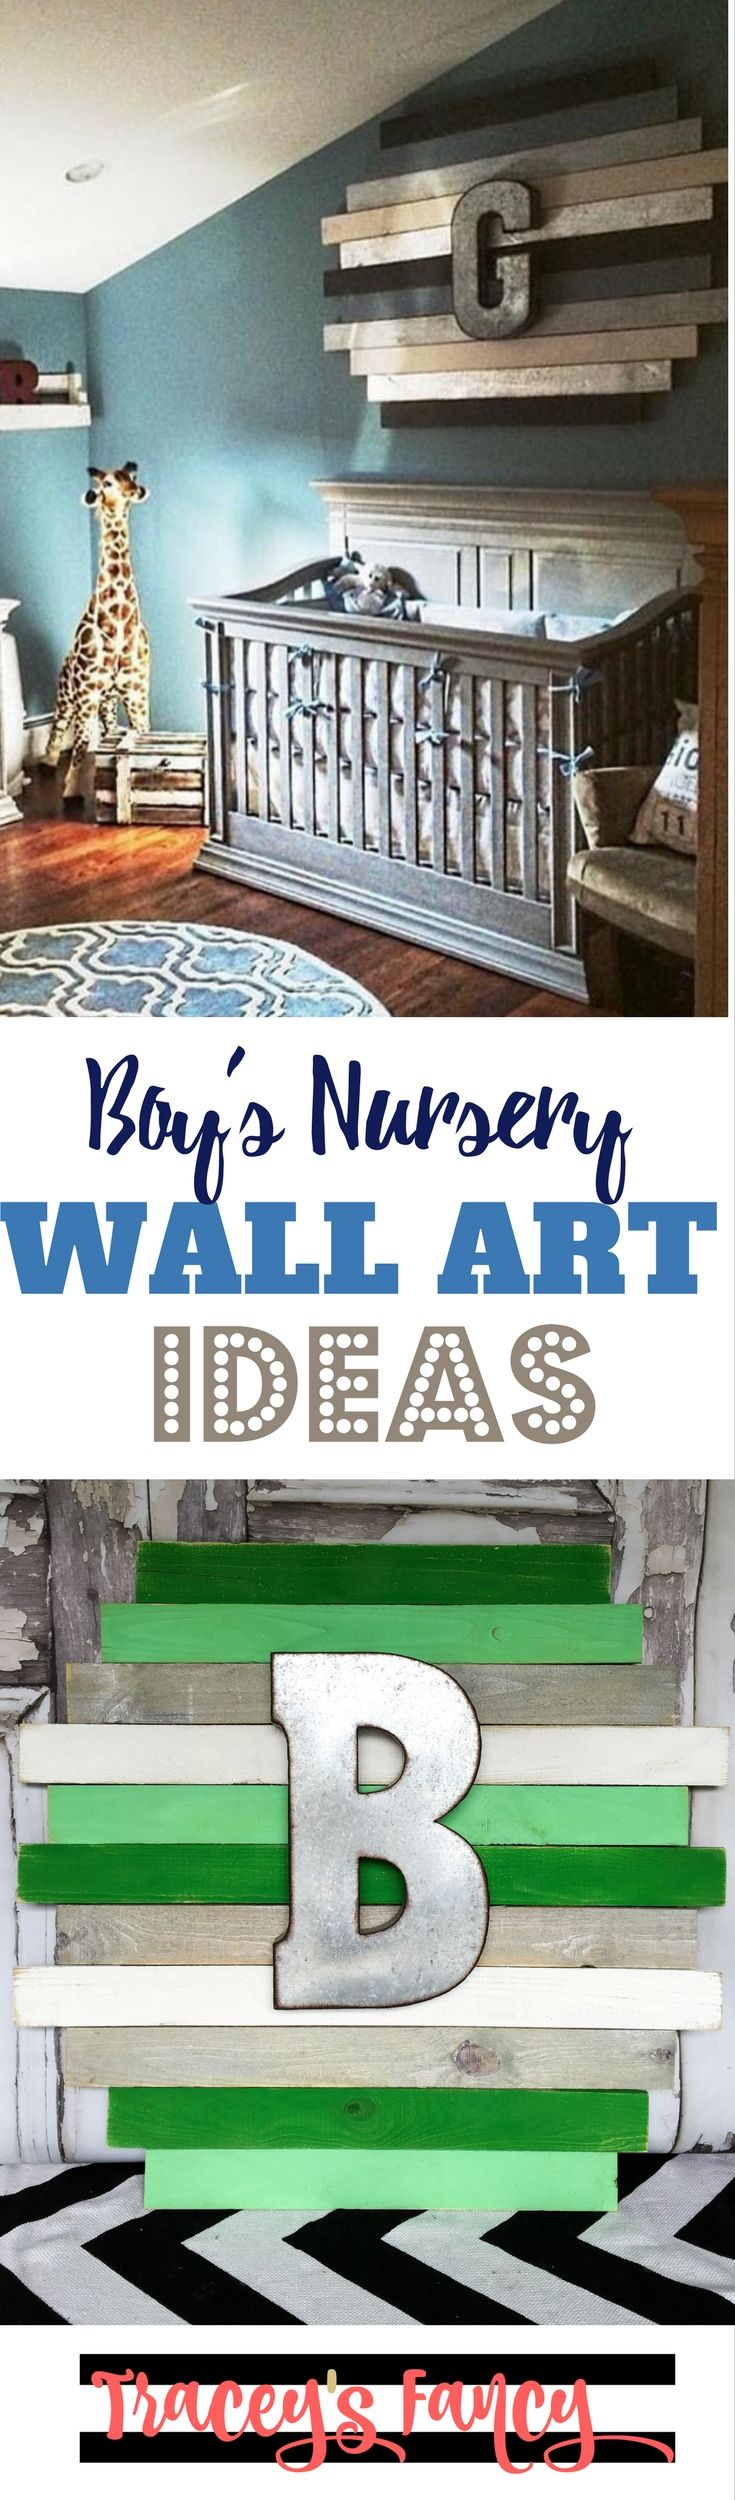 wonderful wall art ideas pinterest nursery decor nursery and fancy